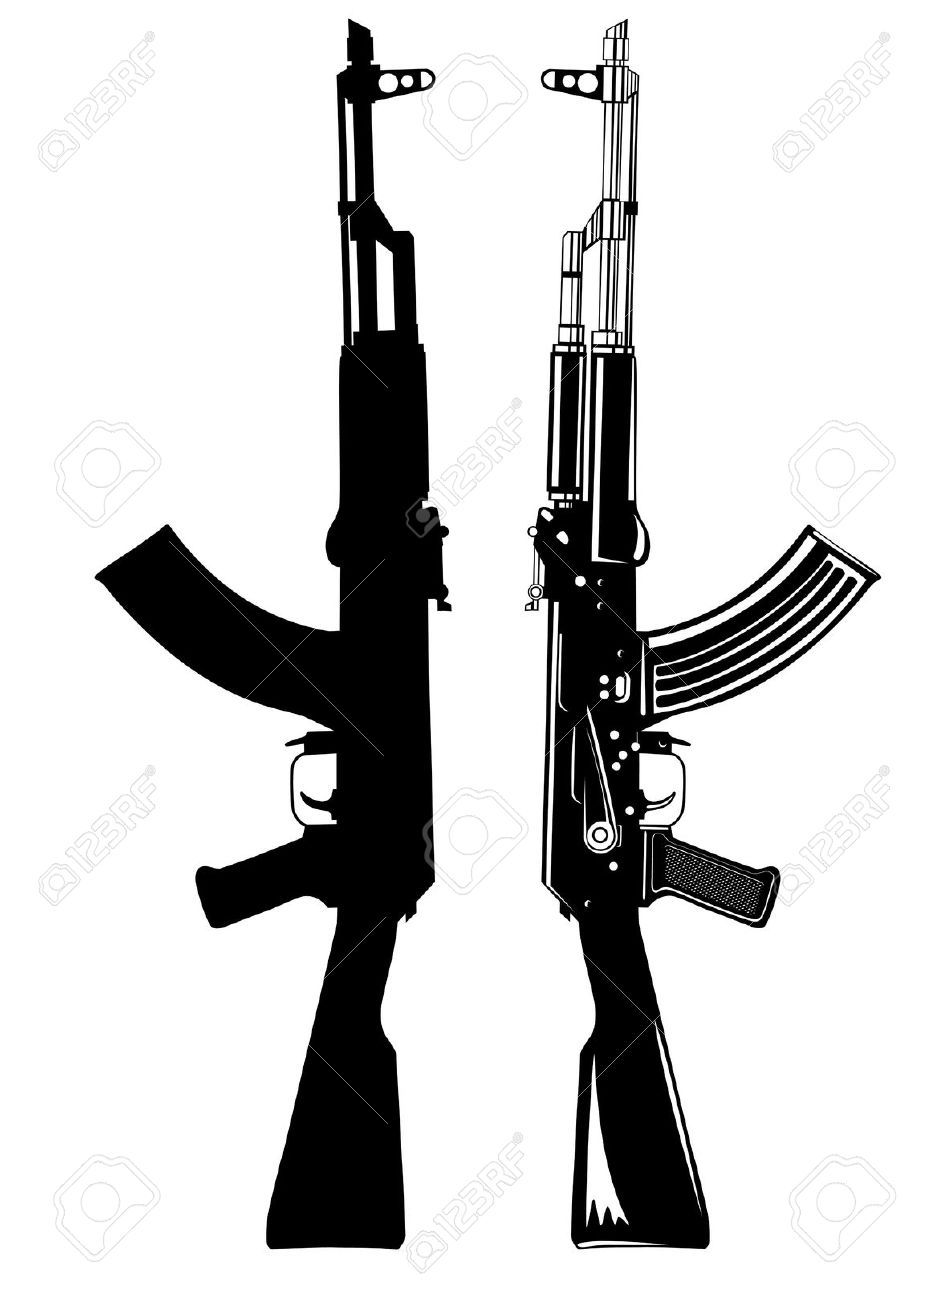 12889382 Image Of The Automatic Machine AK 47 Stock Vector Gun Tattoo 931x1300